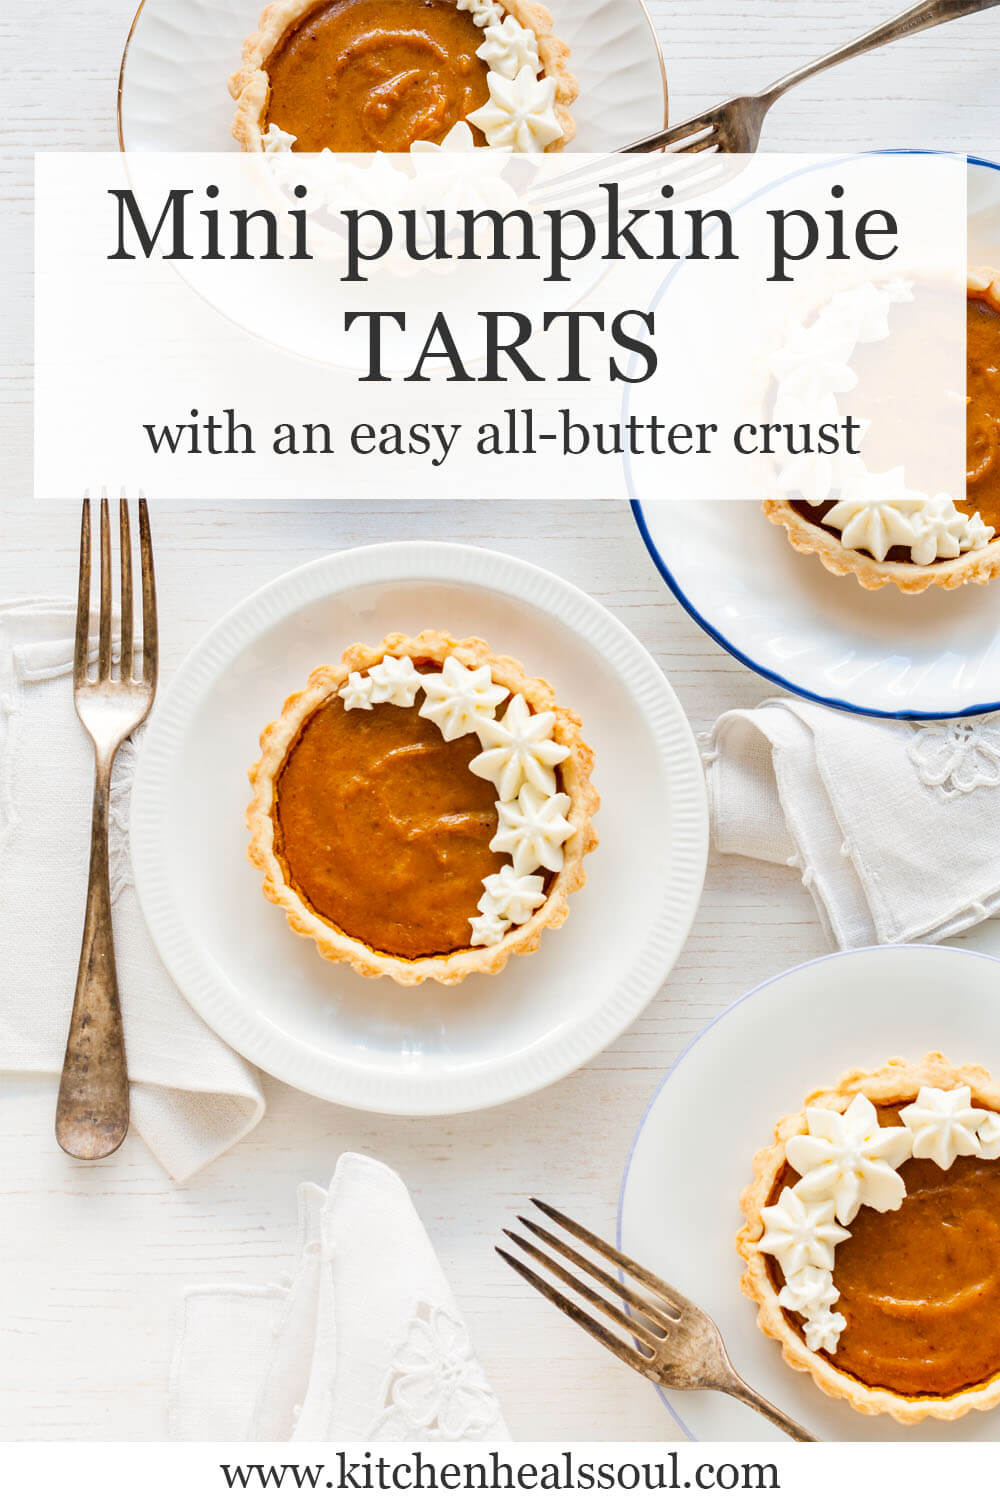 Mini pumpkin pie tarts served on white plates with forks